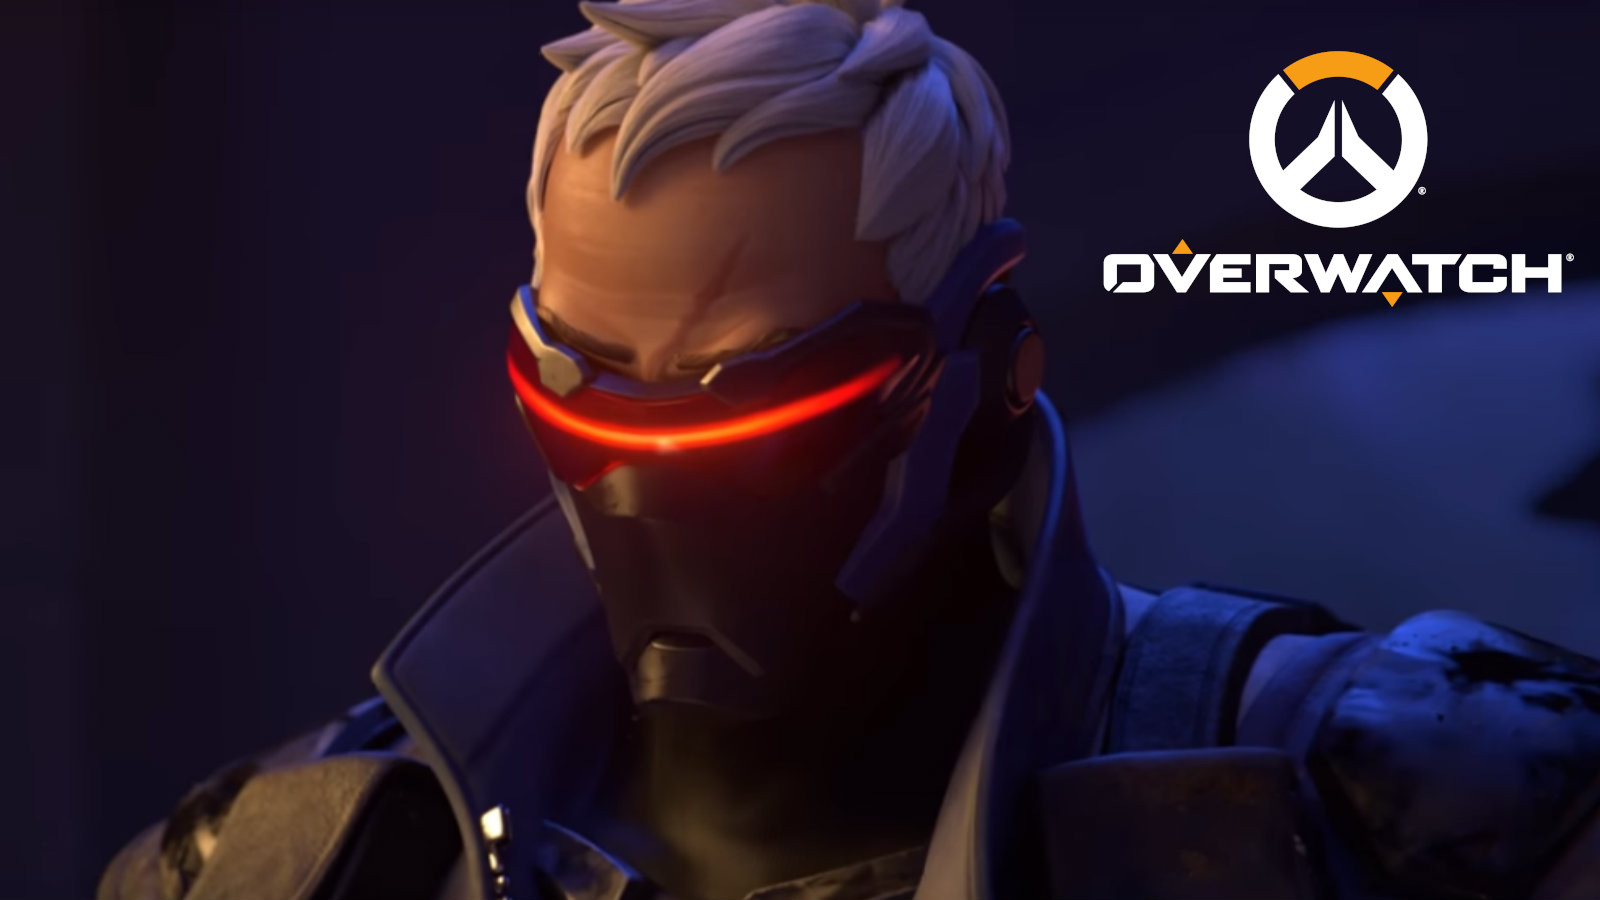 Soldier 76 stares at camera